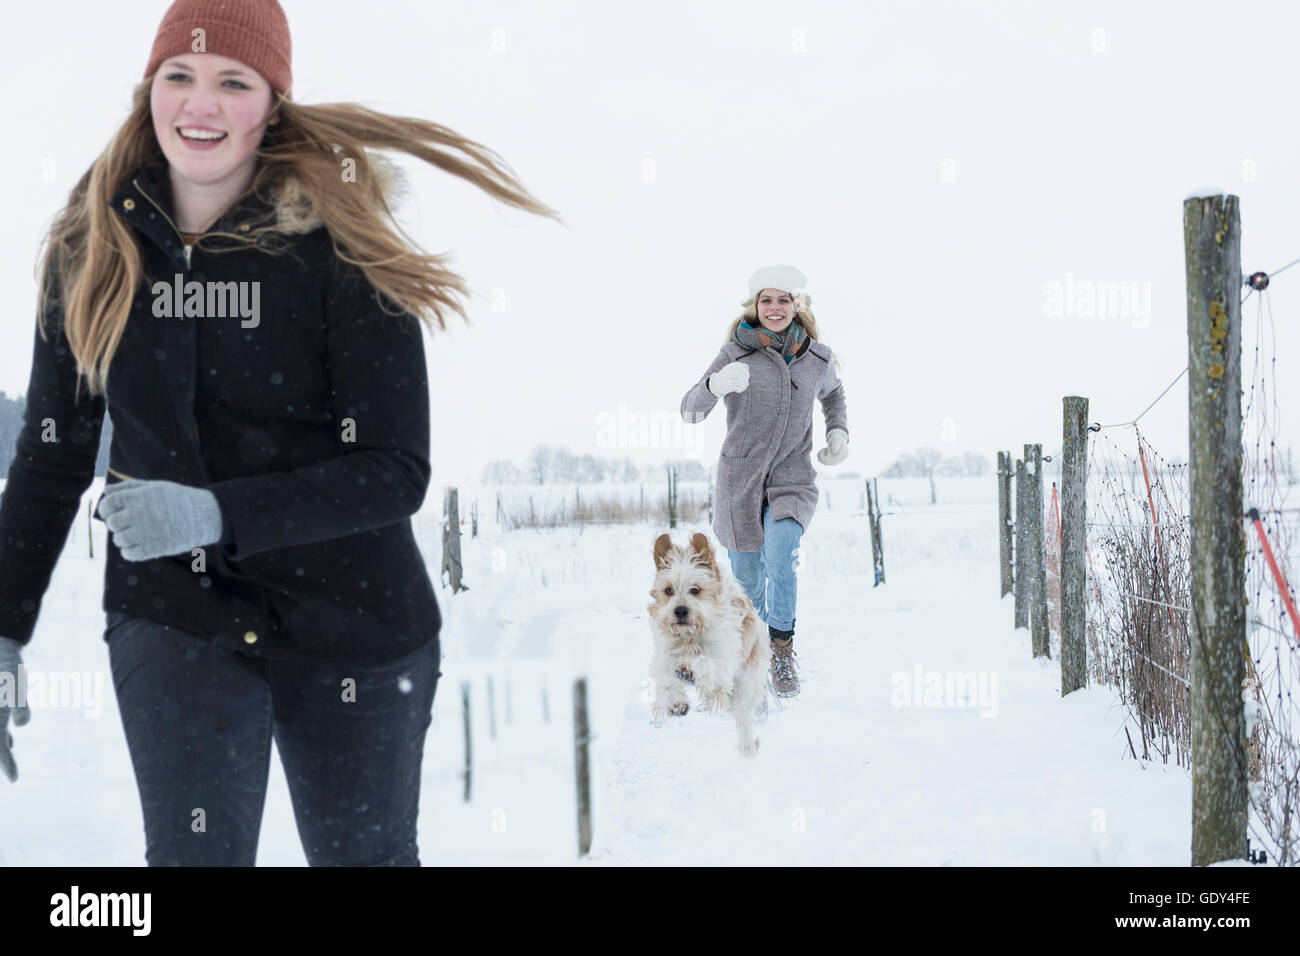 Teenage girls running with dog in snowfield, Bavaria, Germany - Stock Image